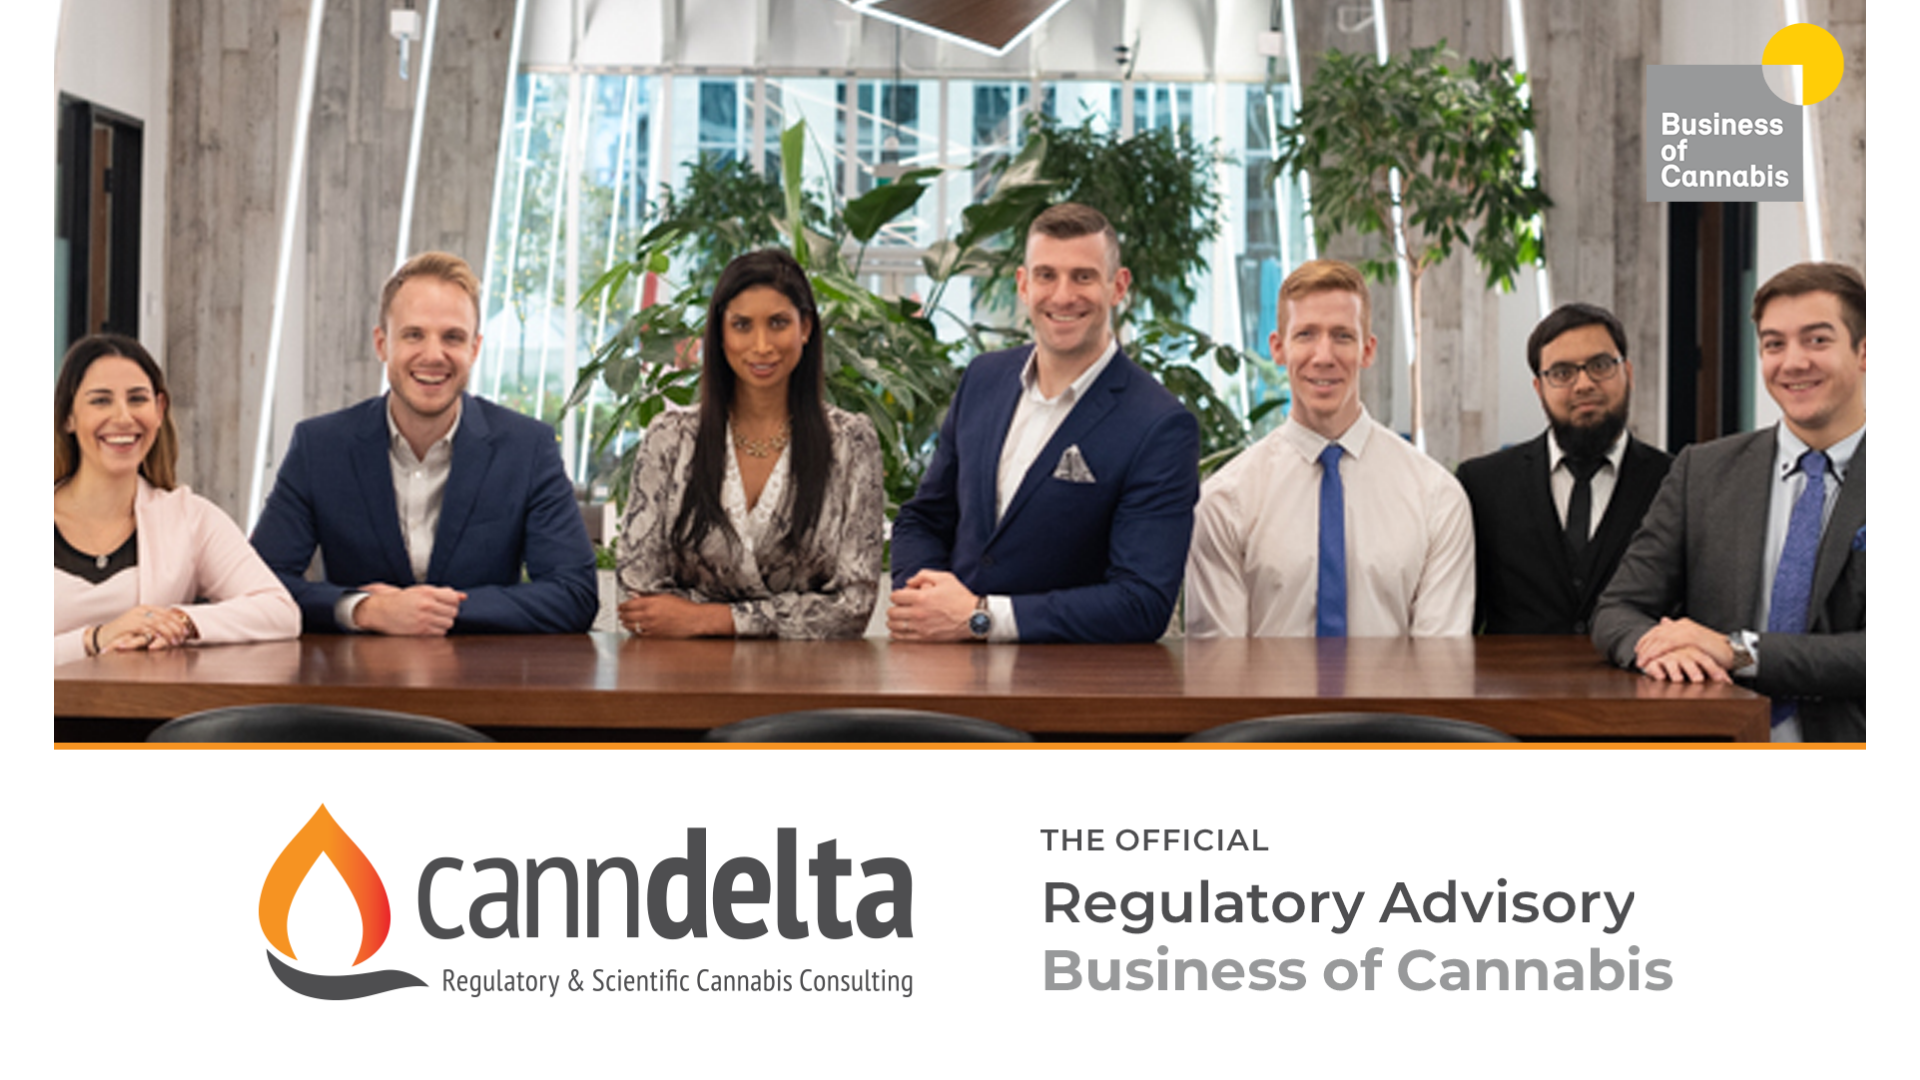 CannDelta becomes Official Regulatory Advisory of Business of Cannabis